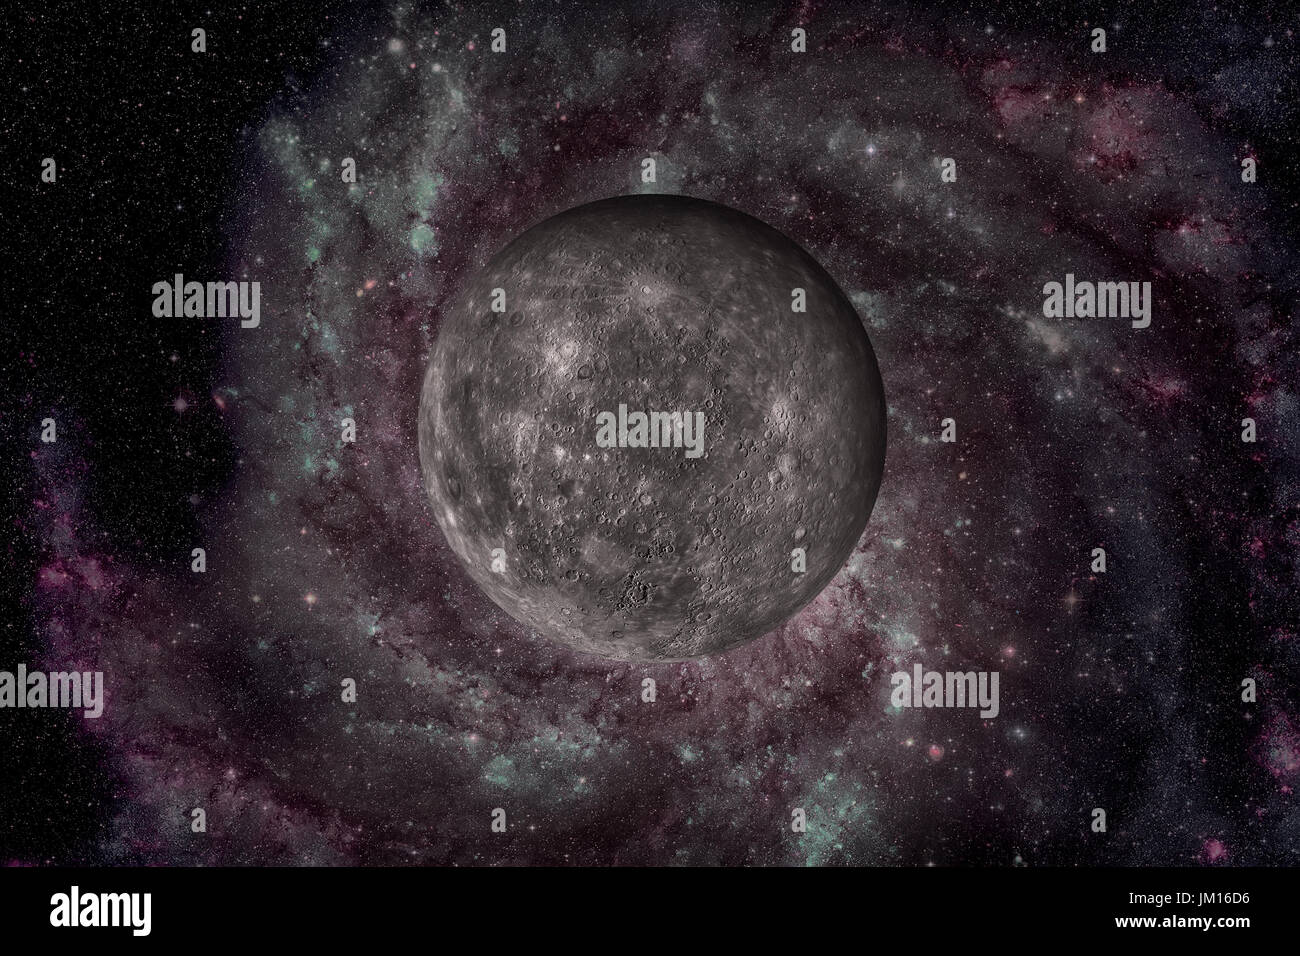 Solar System - Mercury. It is the smallest and closest to the Sun of the eight planets in the Solar System, with an orbital period of about 88 Earth d - Stock Image